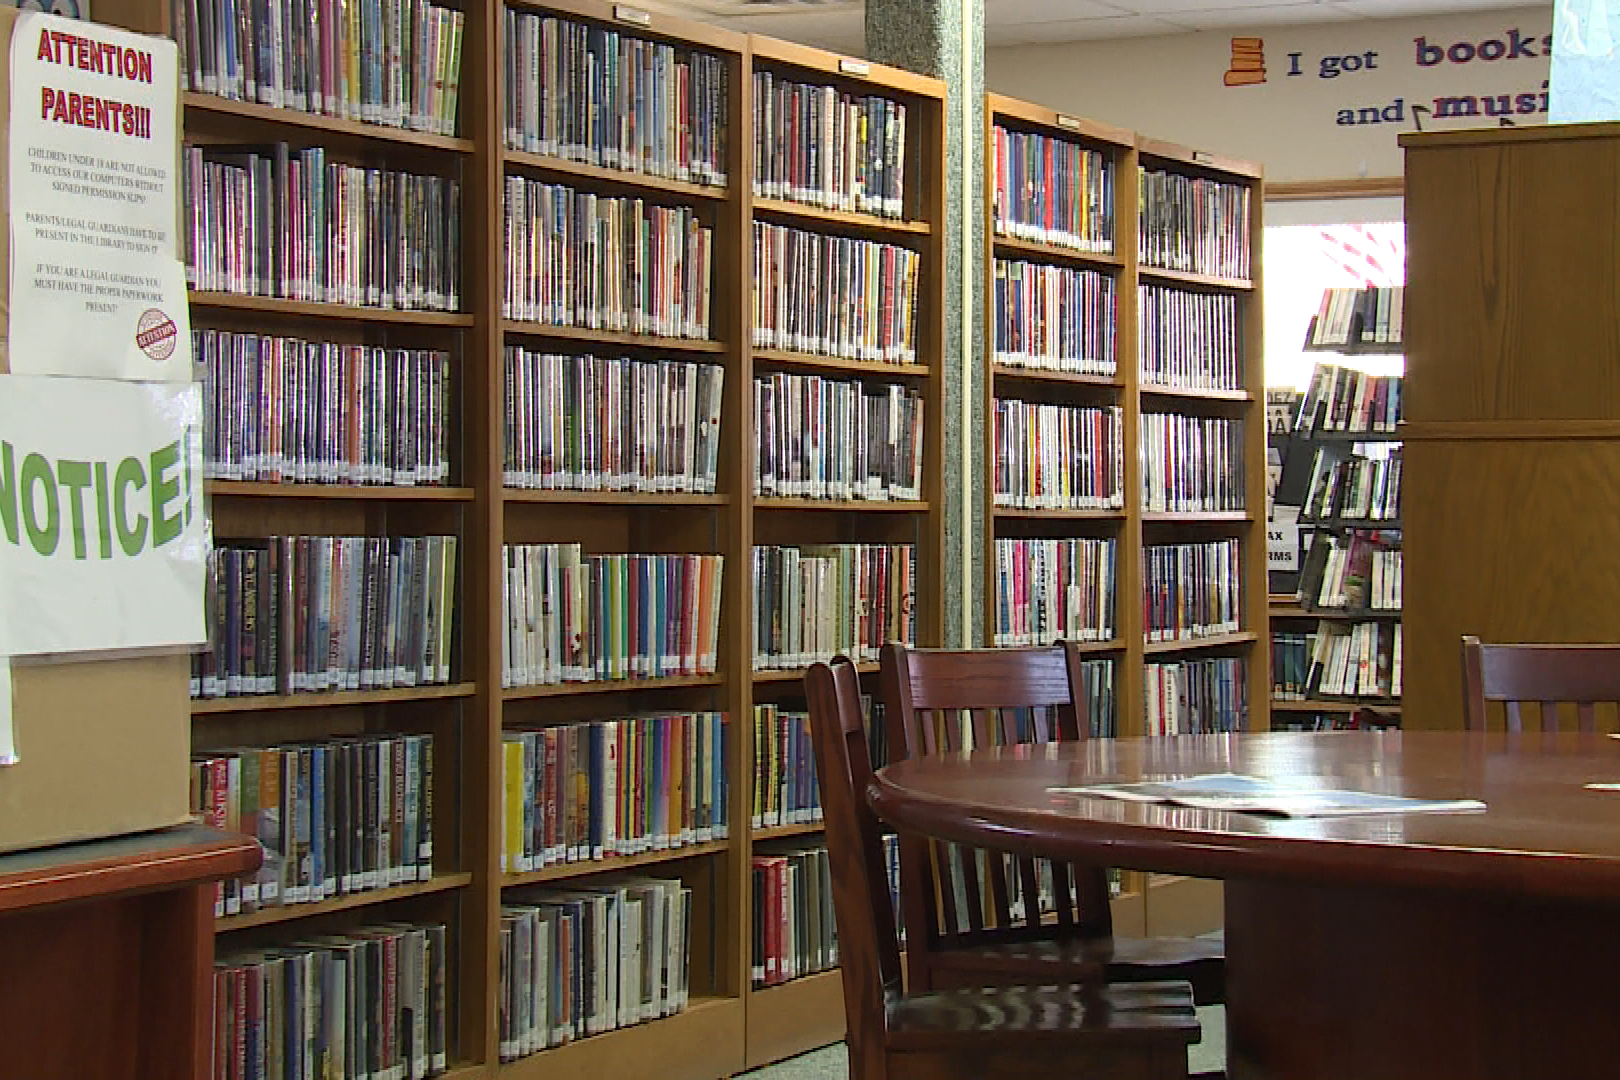 The library offered nearly 300 special programs last year (Steve Burns, WFIU/WTIU News).